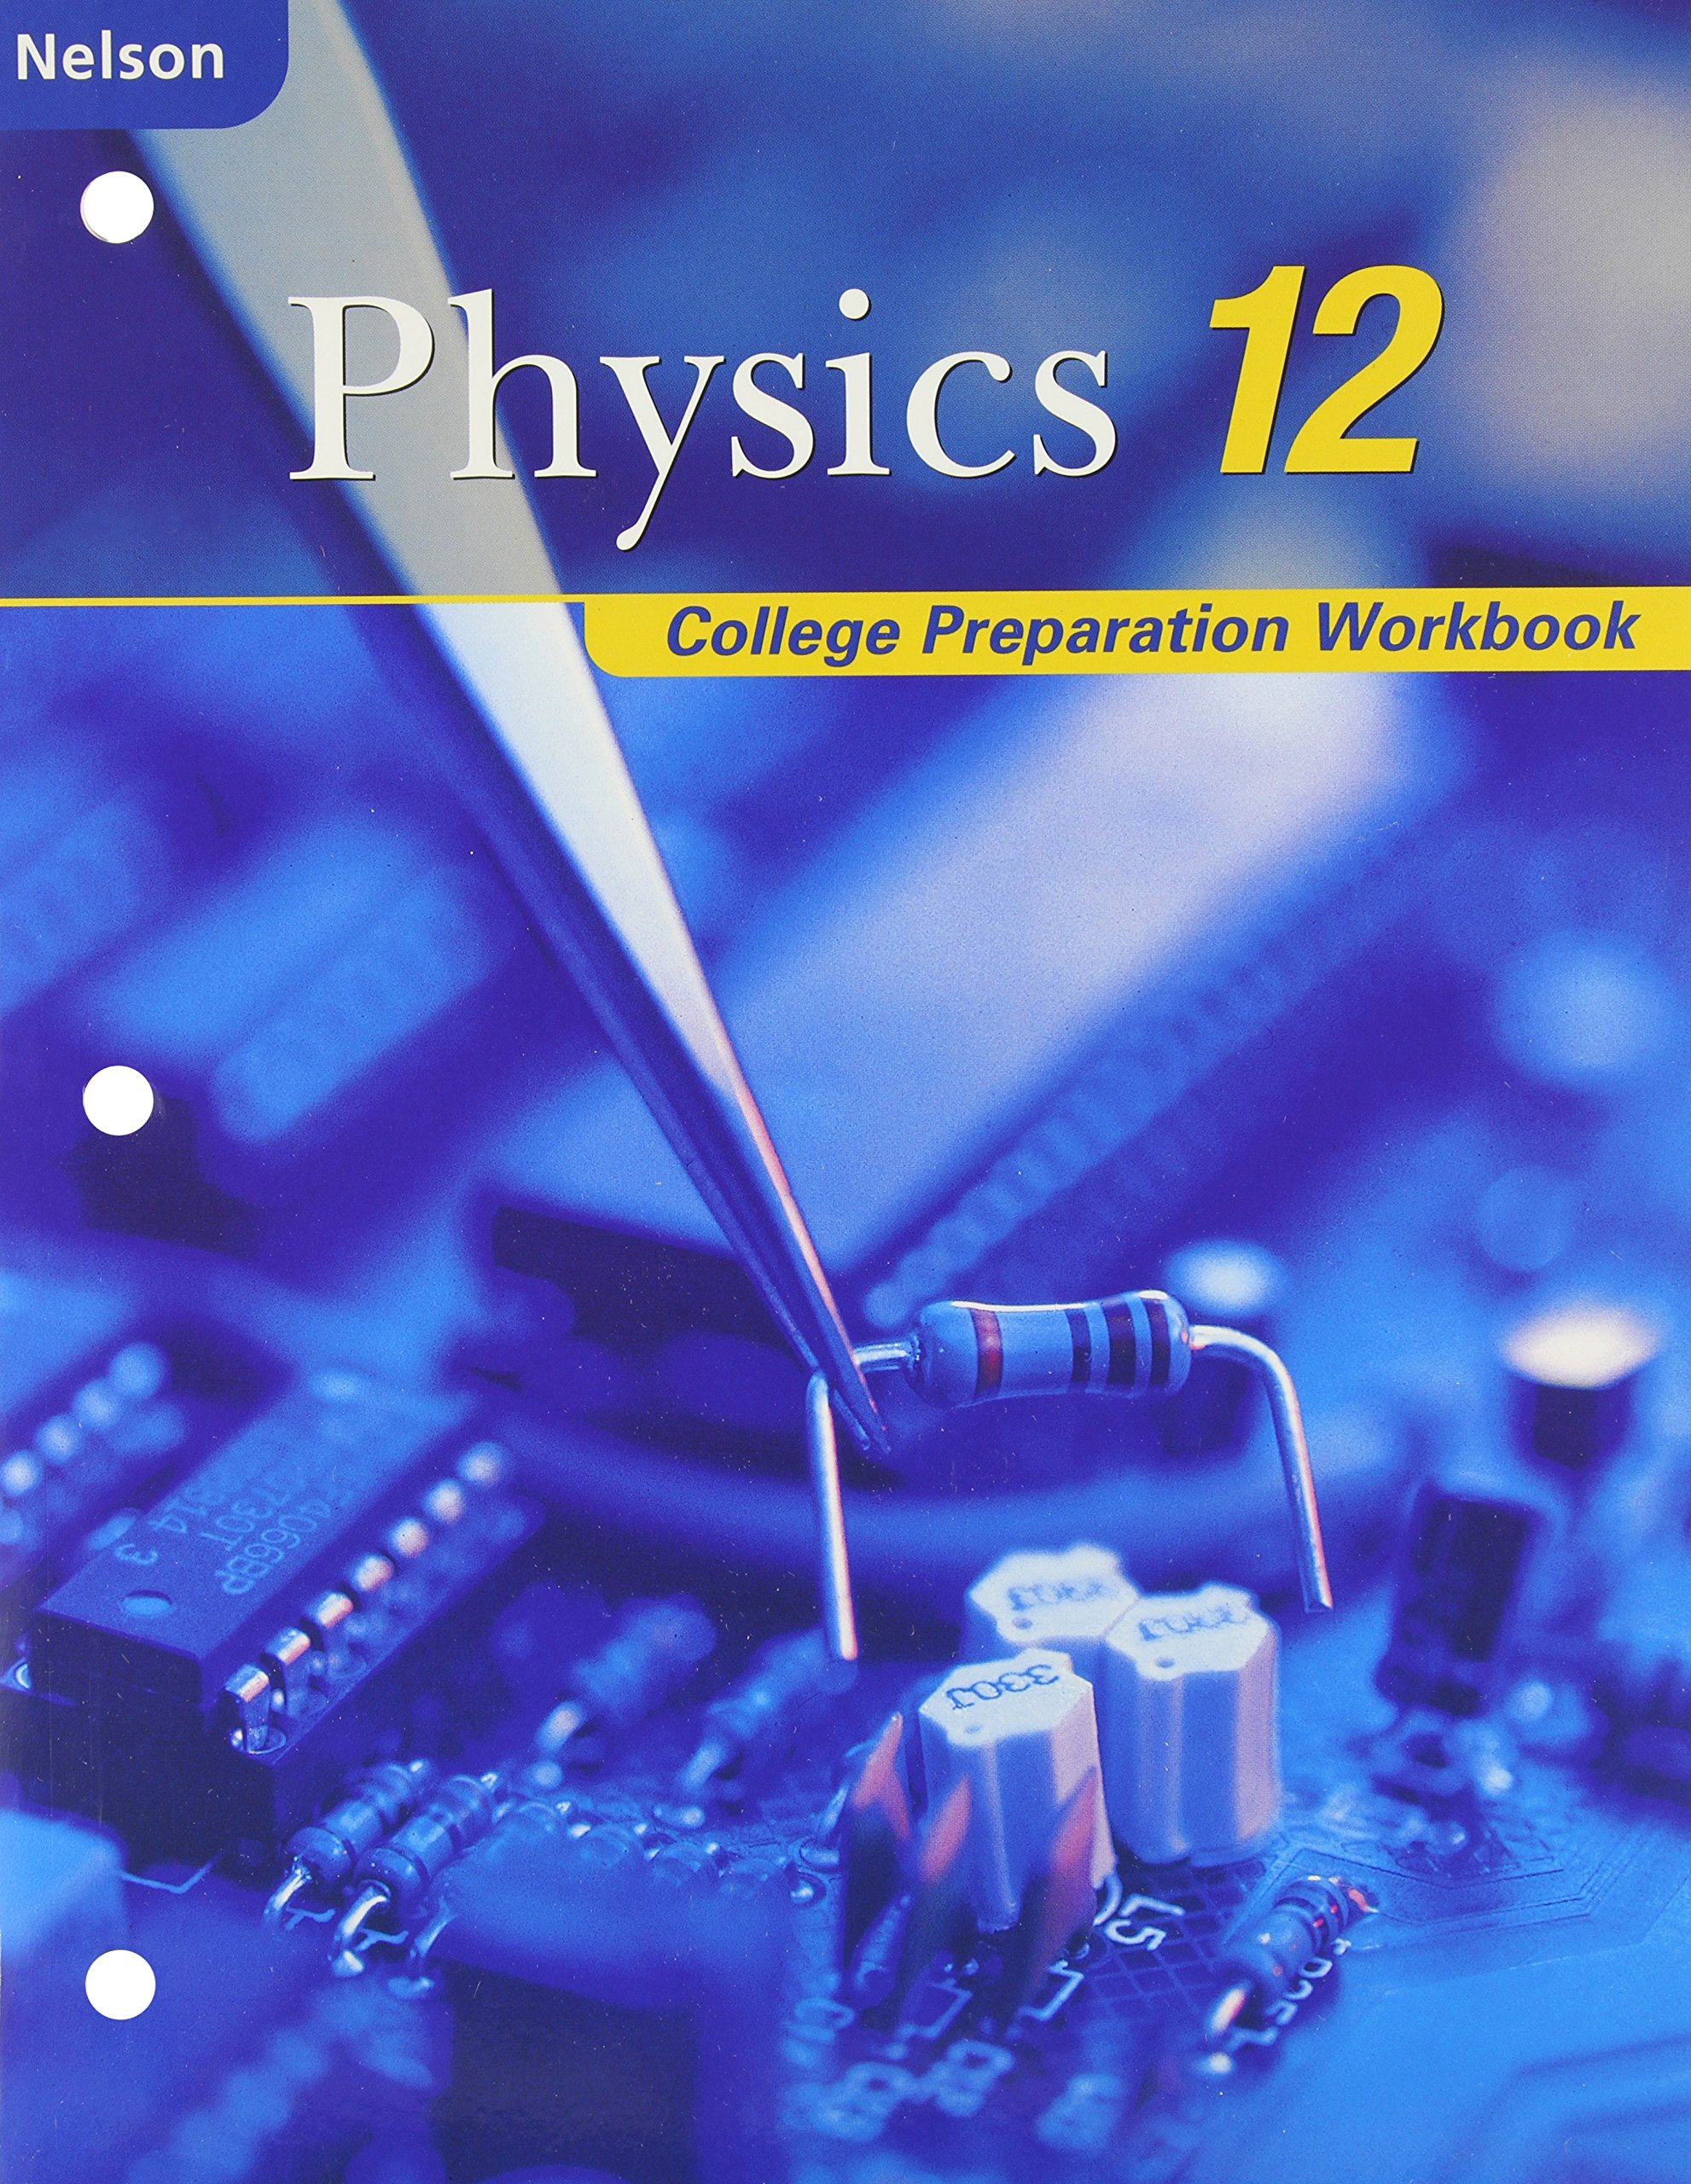 Nelson Physics 12: College Preparation: Workbook: Alan Hirsch